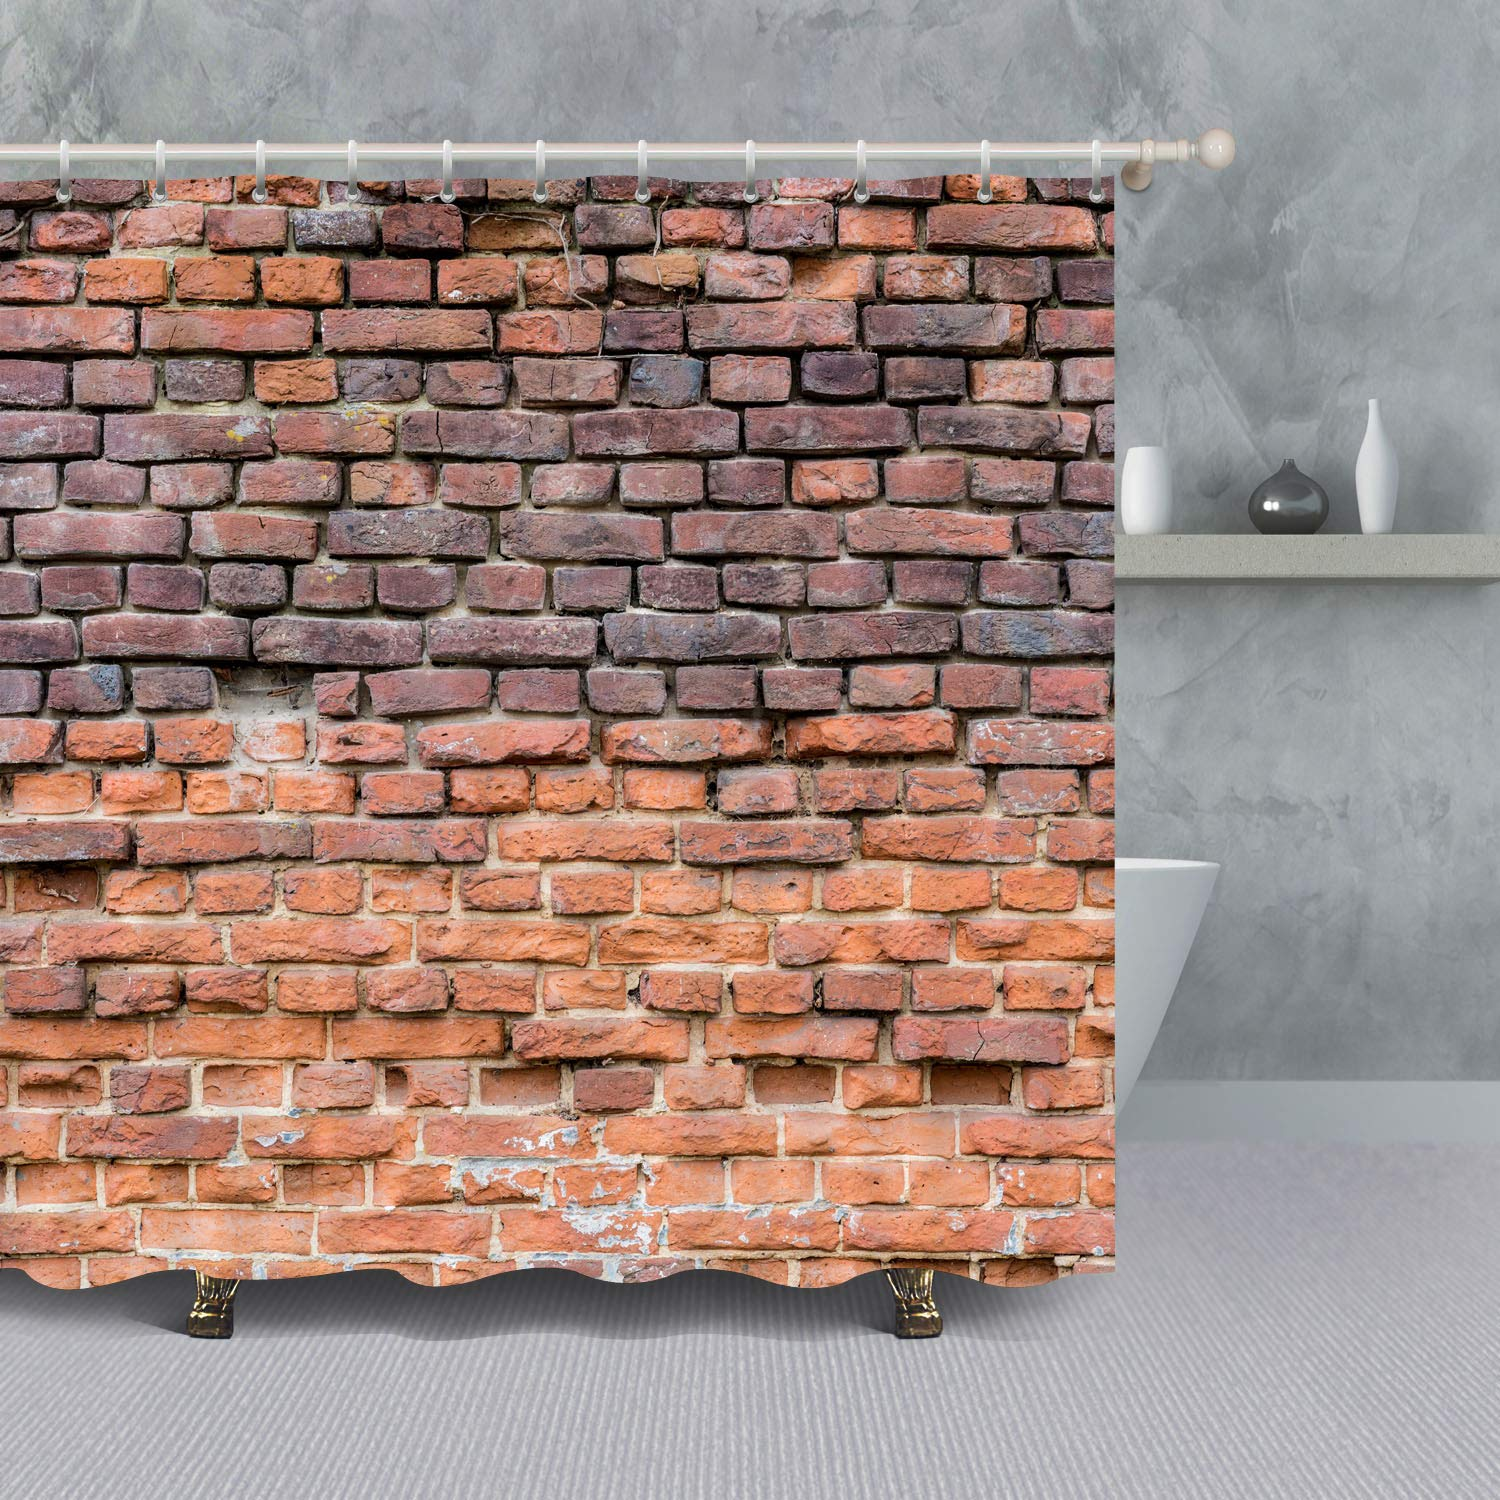 Brick Wall Shower CurtainVintage Marble Stone WallWaterproof Polyester Fabric Bath